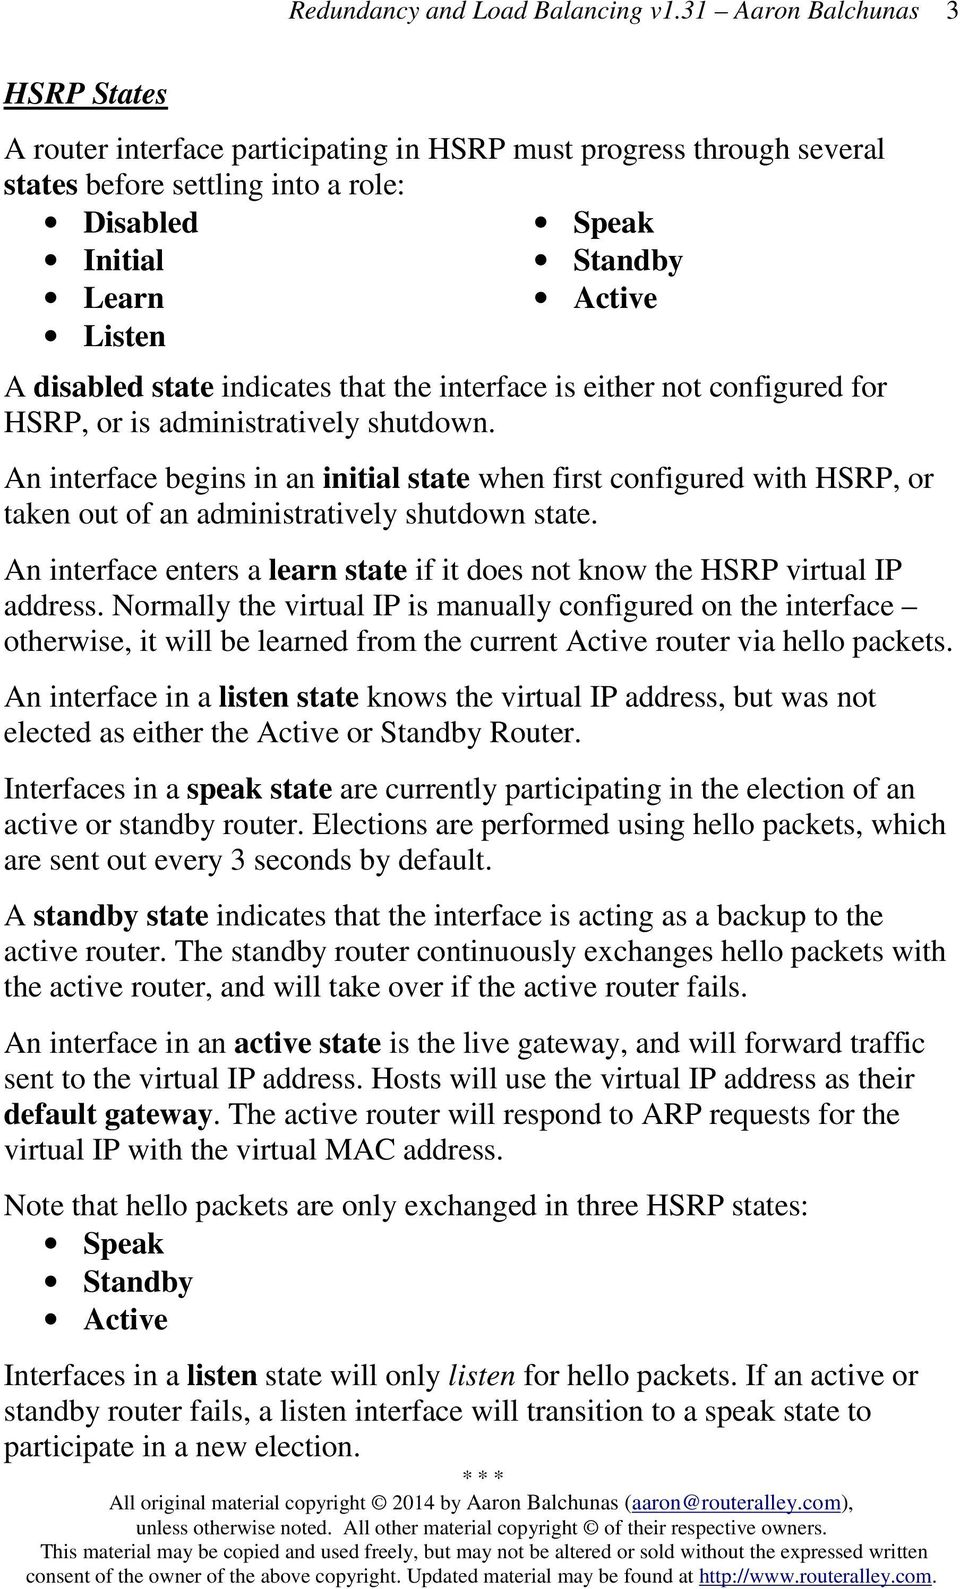 An interface begins in an initial state when first configured with HSRP, or taken out of an administratively shutdown state.